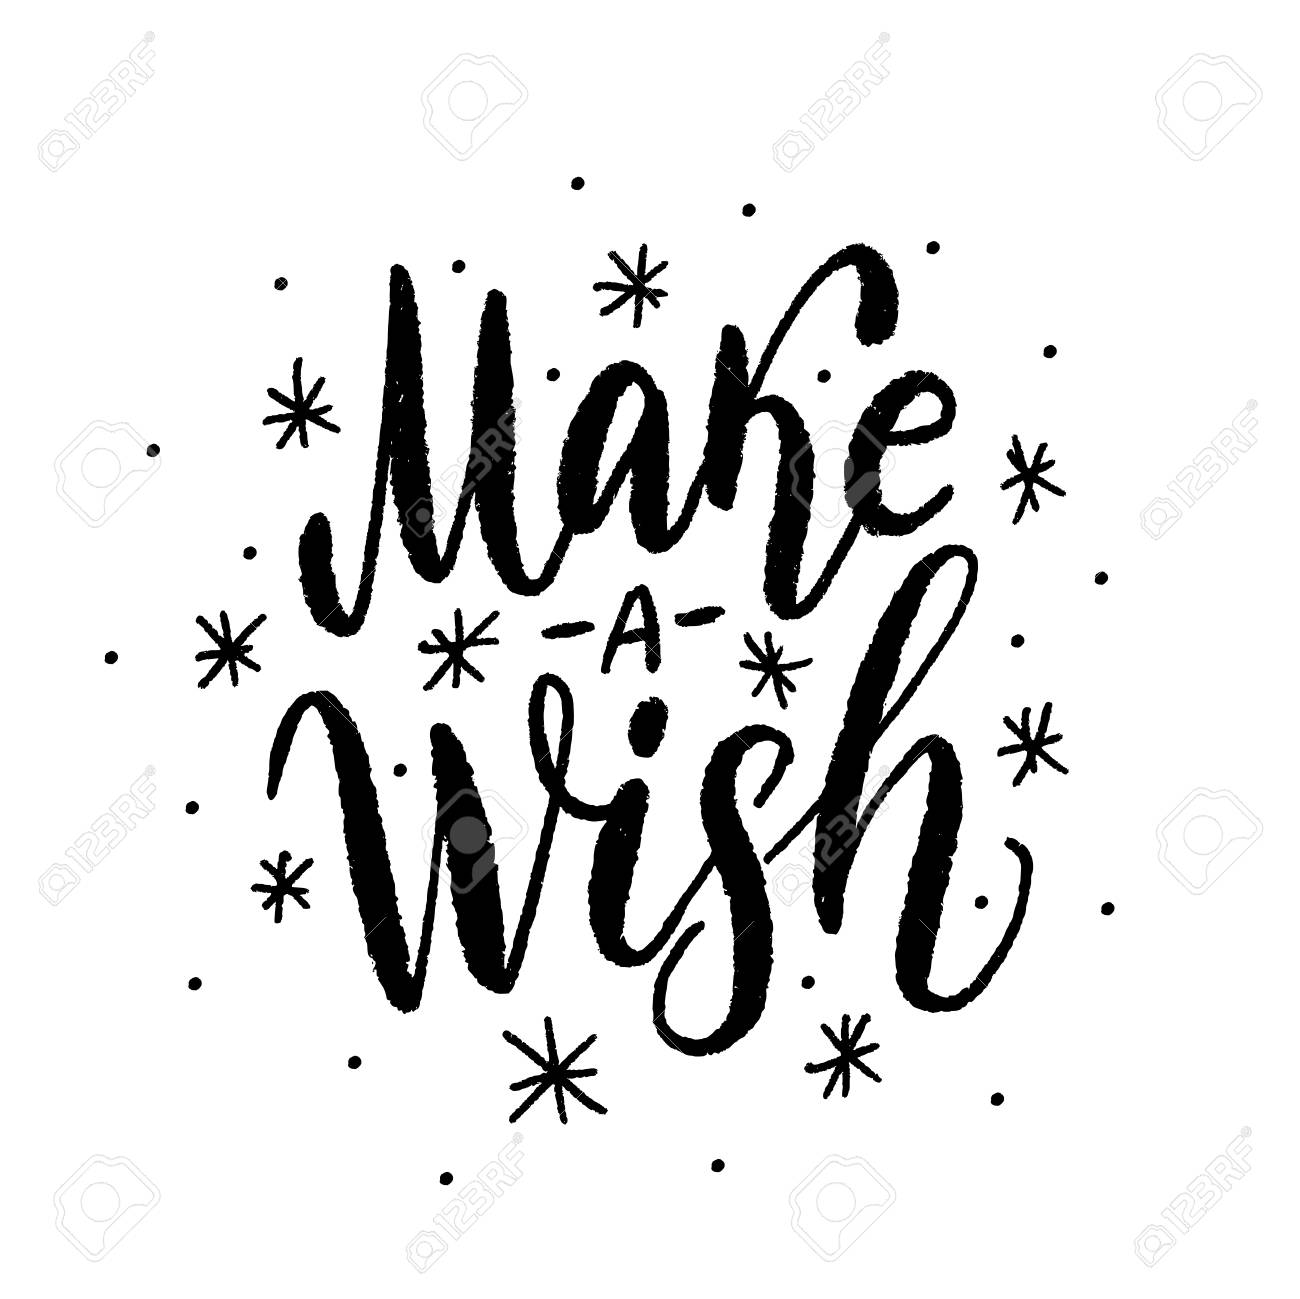 Make A Wish Text Vector Illustartion Design For Print Christmas Or Birthday Greeting Cards